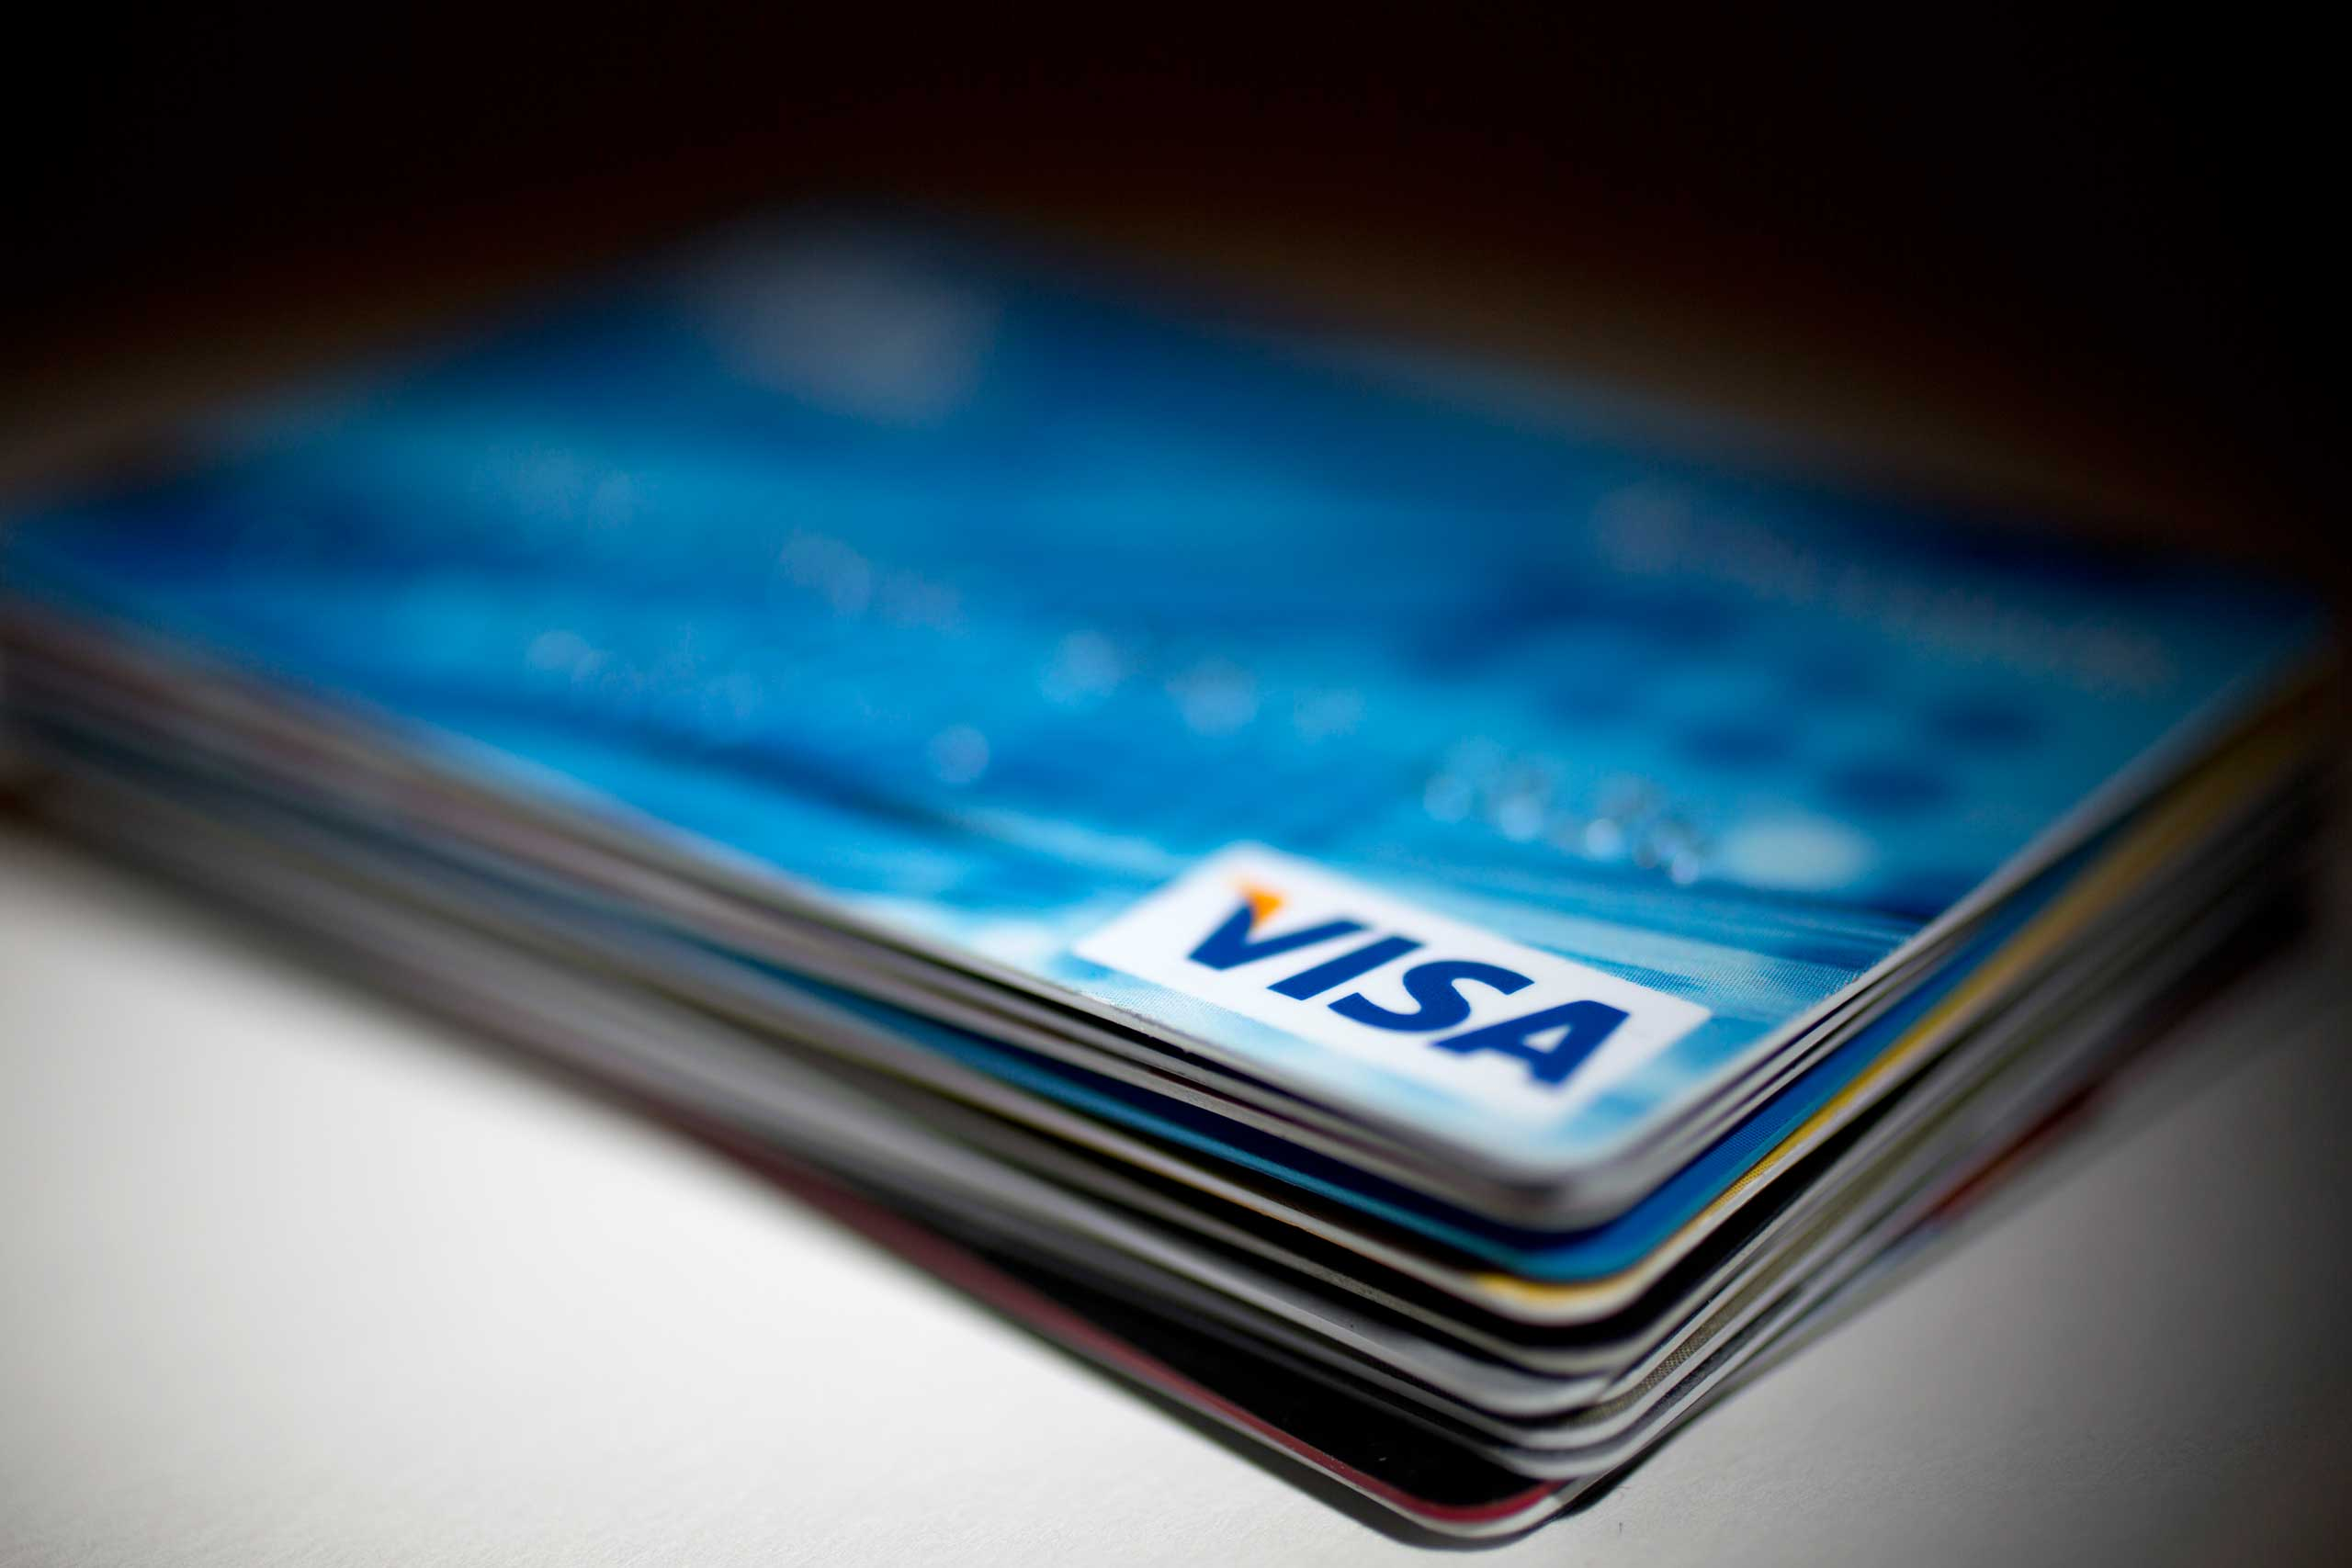 A Visa Inc. credit card sits on top of credit and debit cards arranged for a photograph in Washington on Jan. 29, 2014.